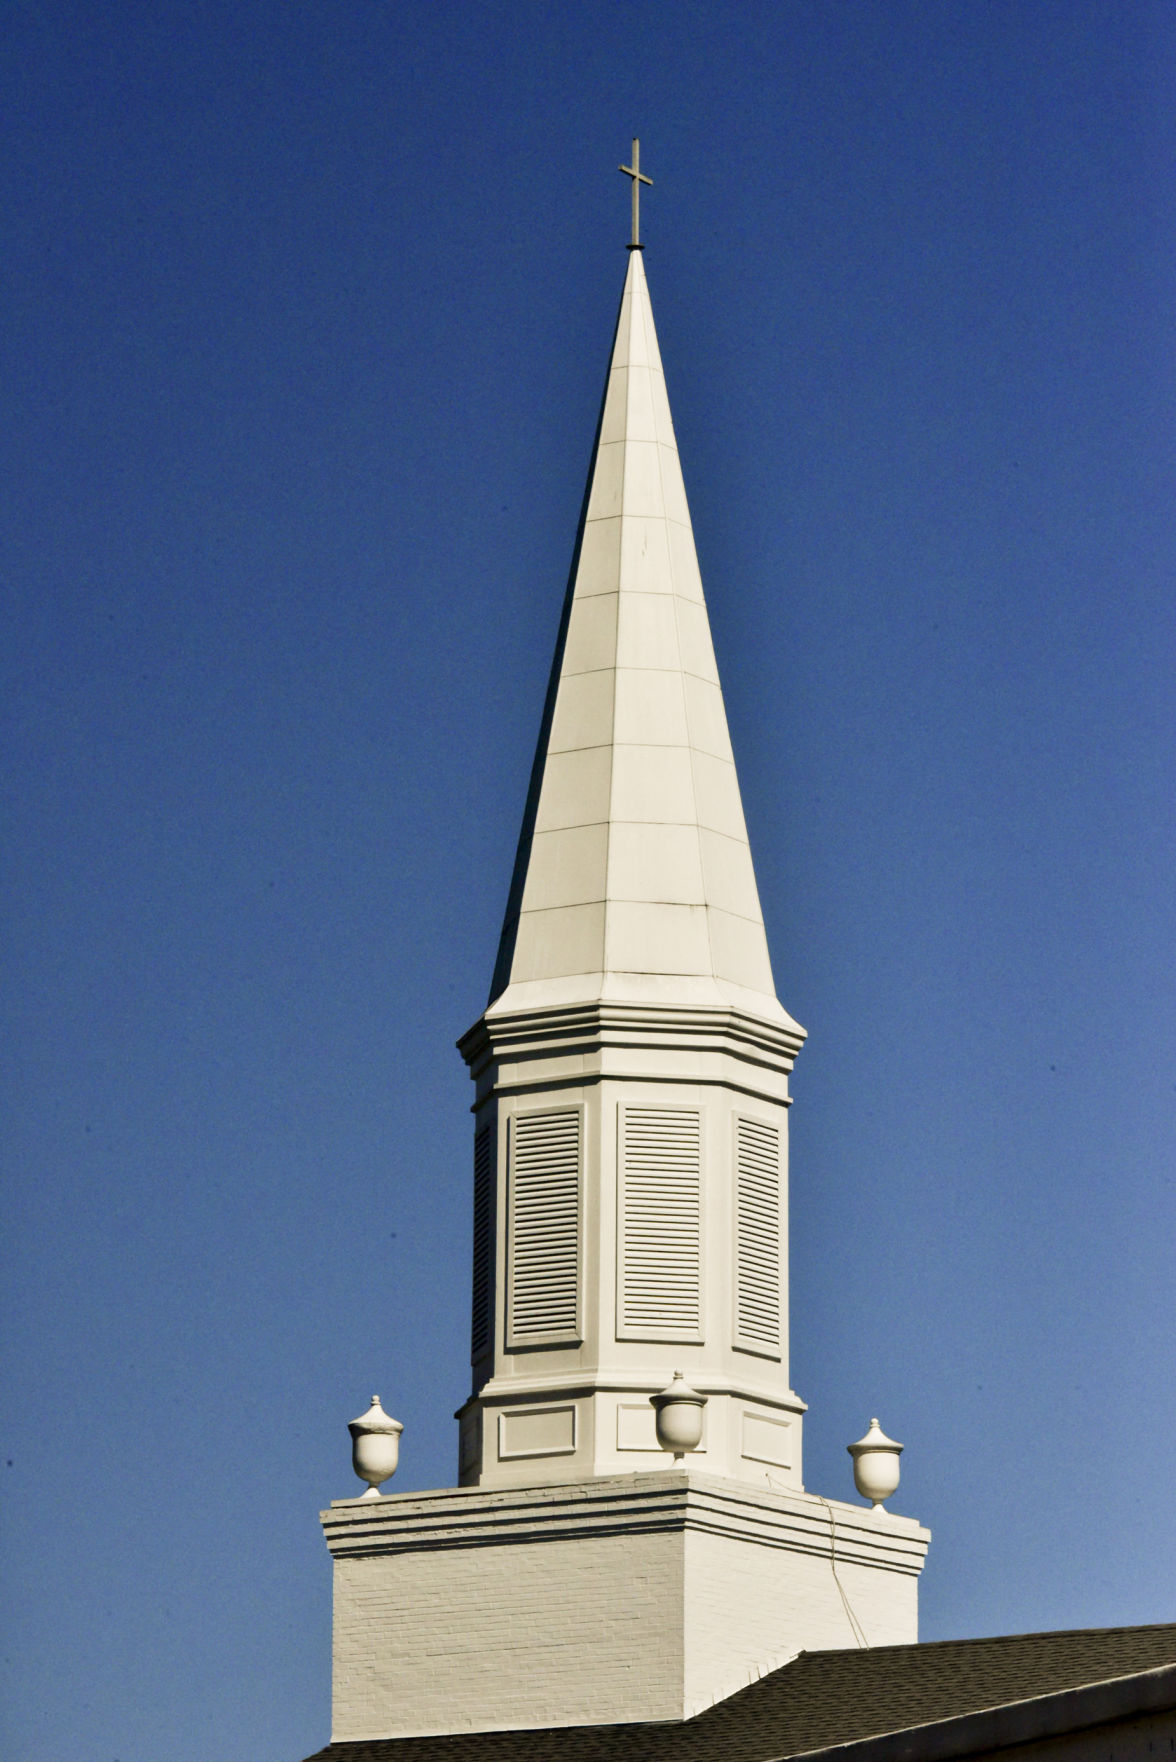 St. Andrews Church Steeple